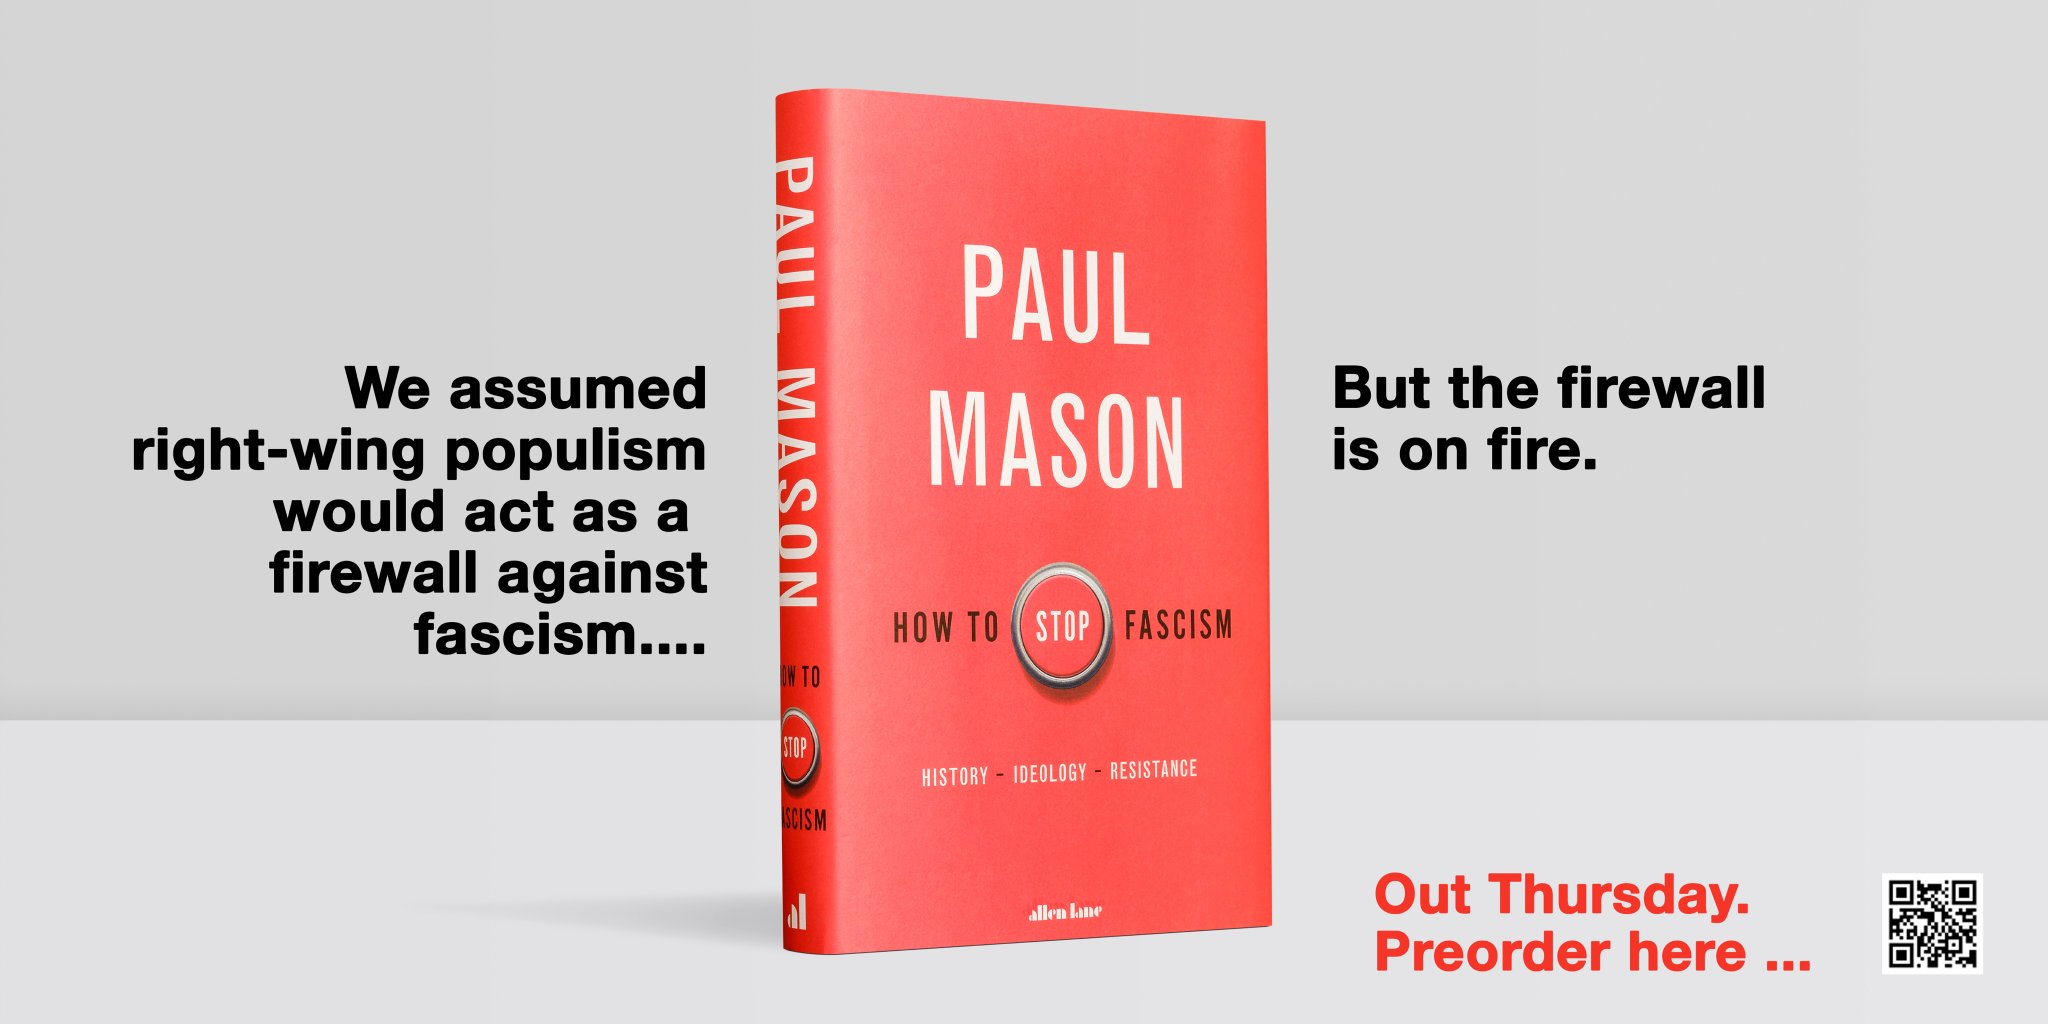 """Paul Mason on Twitter: """"How To Stop Fascism: History, Ideology, Resistance  comes out this Thursday, published by Allen Lane in ebook, audiobook and  hardback ... check my website https://t.co/6qVyE4t2Pb to preorder👇🏼…  https://t.co/8eF21dOJ2p"""""""